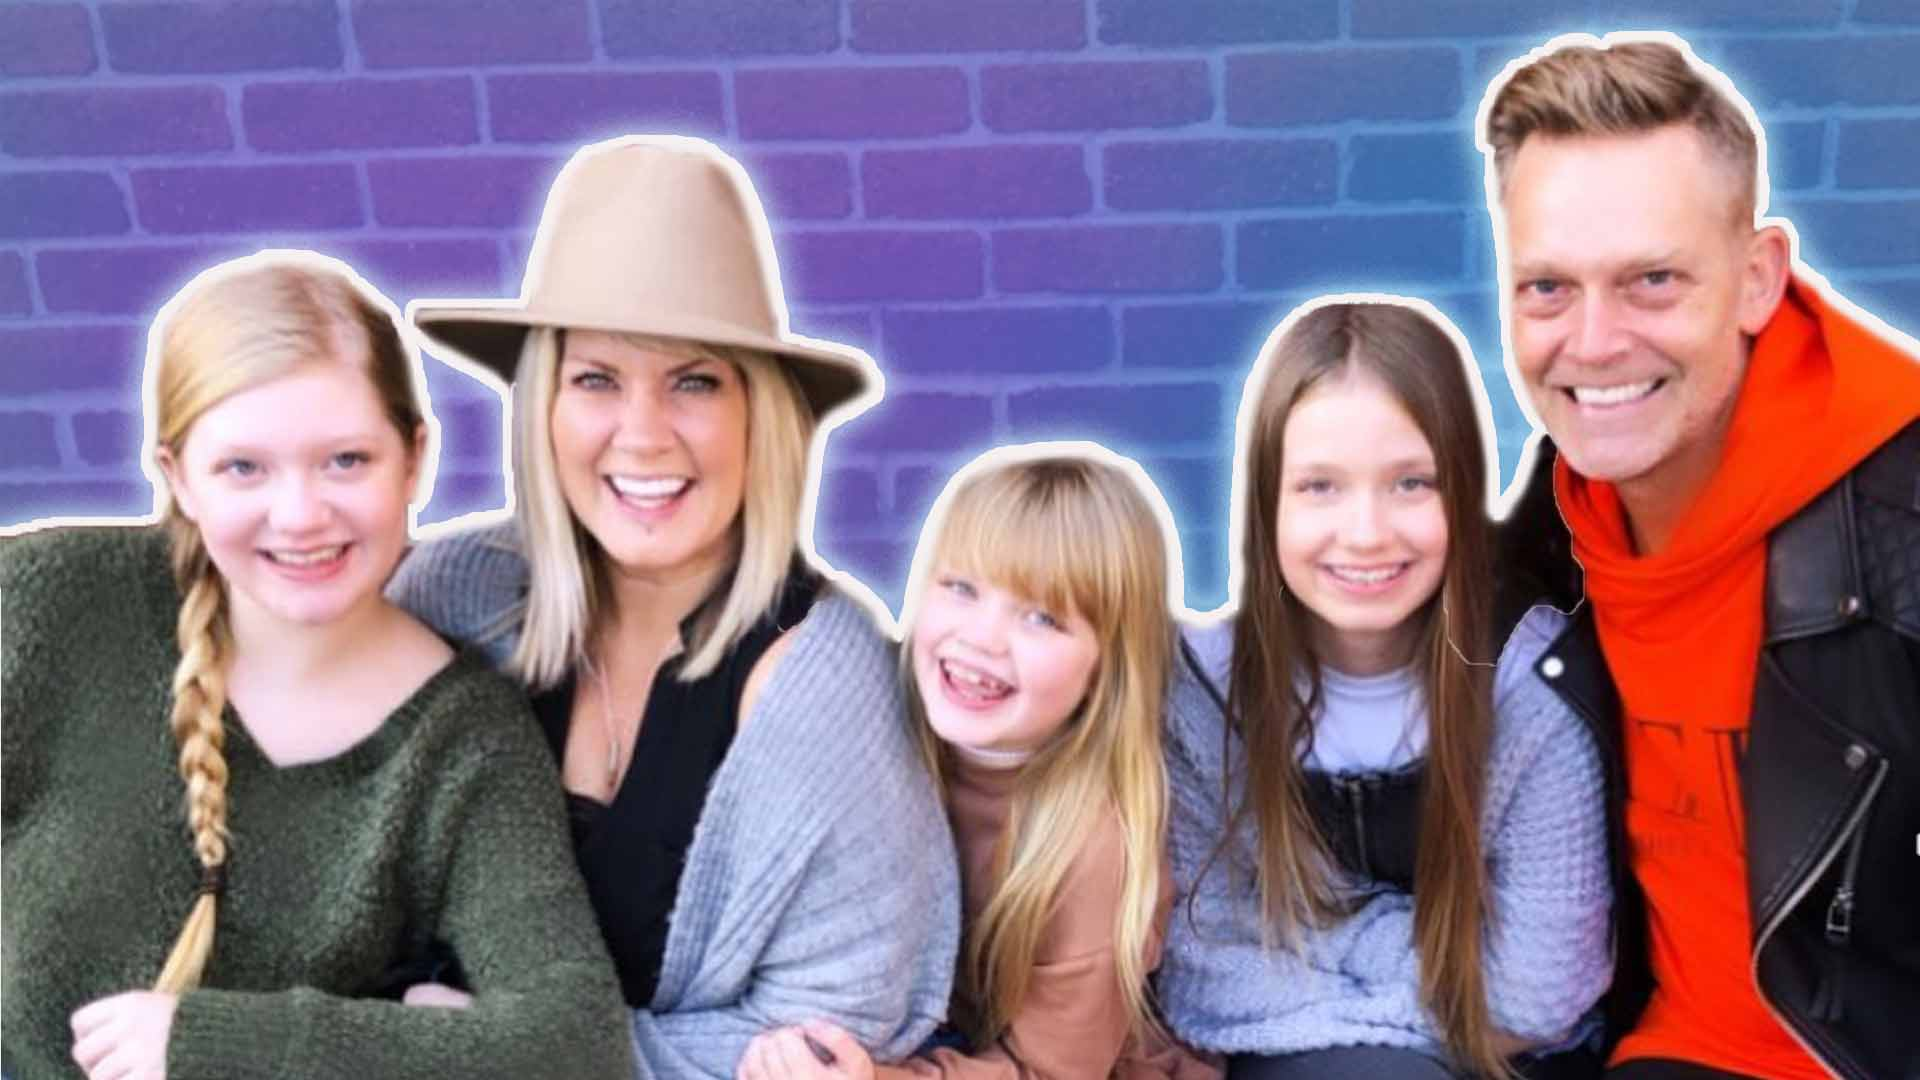 Natalie Grant with her 3 daughters and husband